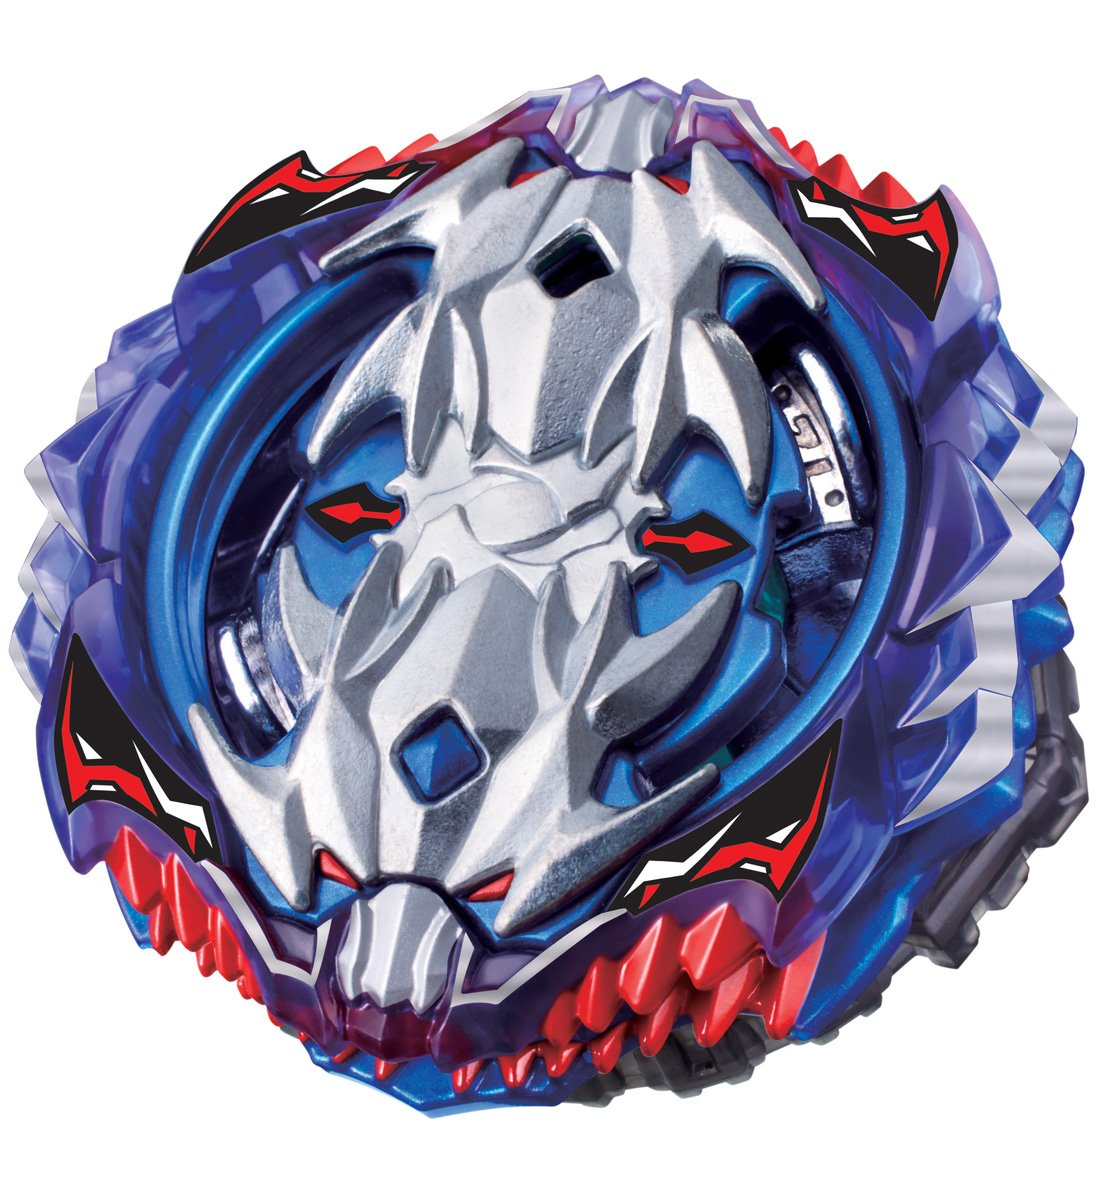 Takaratomy Beyblade Burst B-118 Random Booster Vol. 11 Vise Leopard.12L.Ds Attack Type